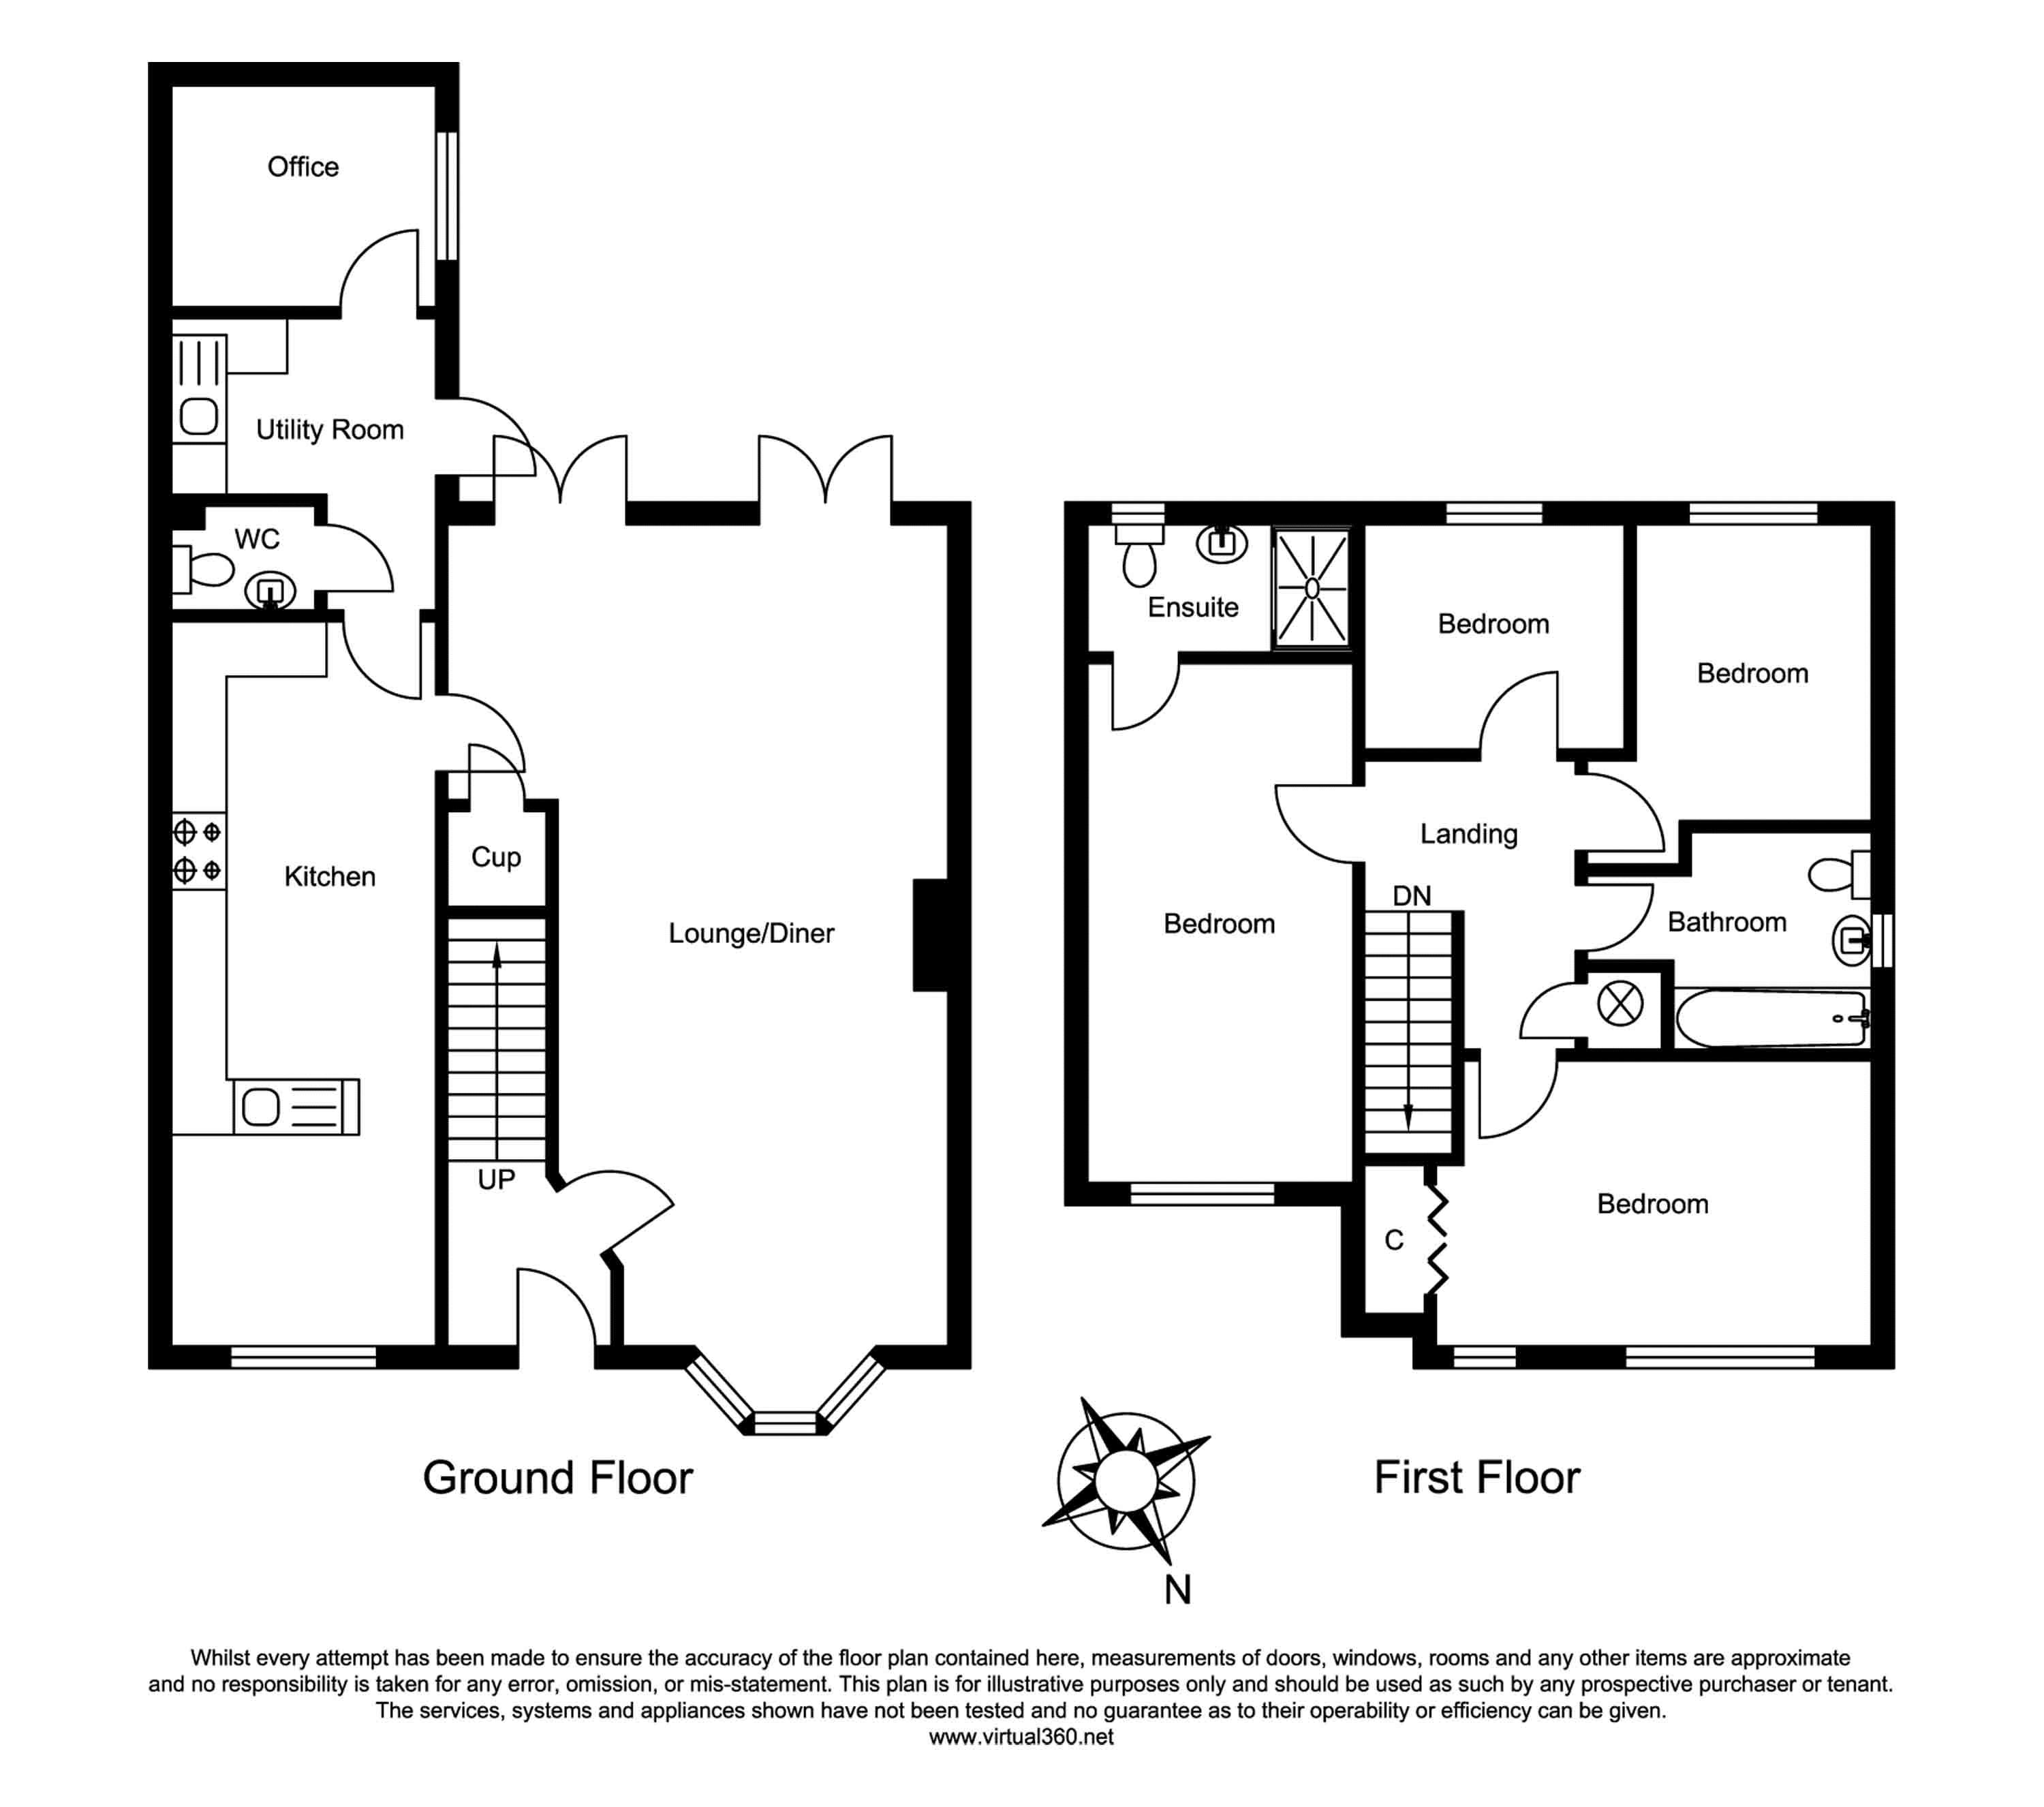 Fringford Close, Lower Earley, Reading floor plan